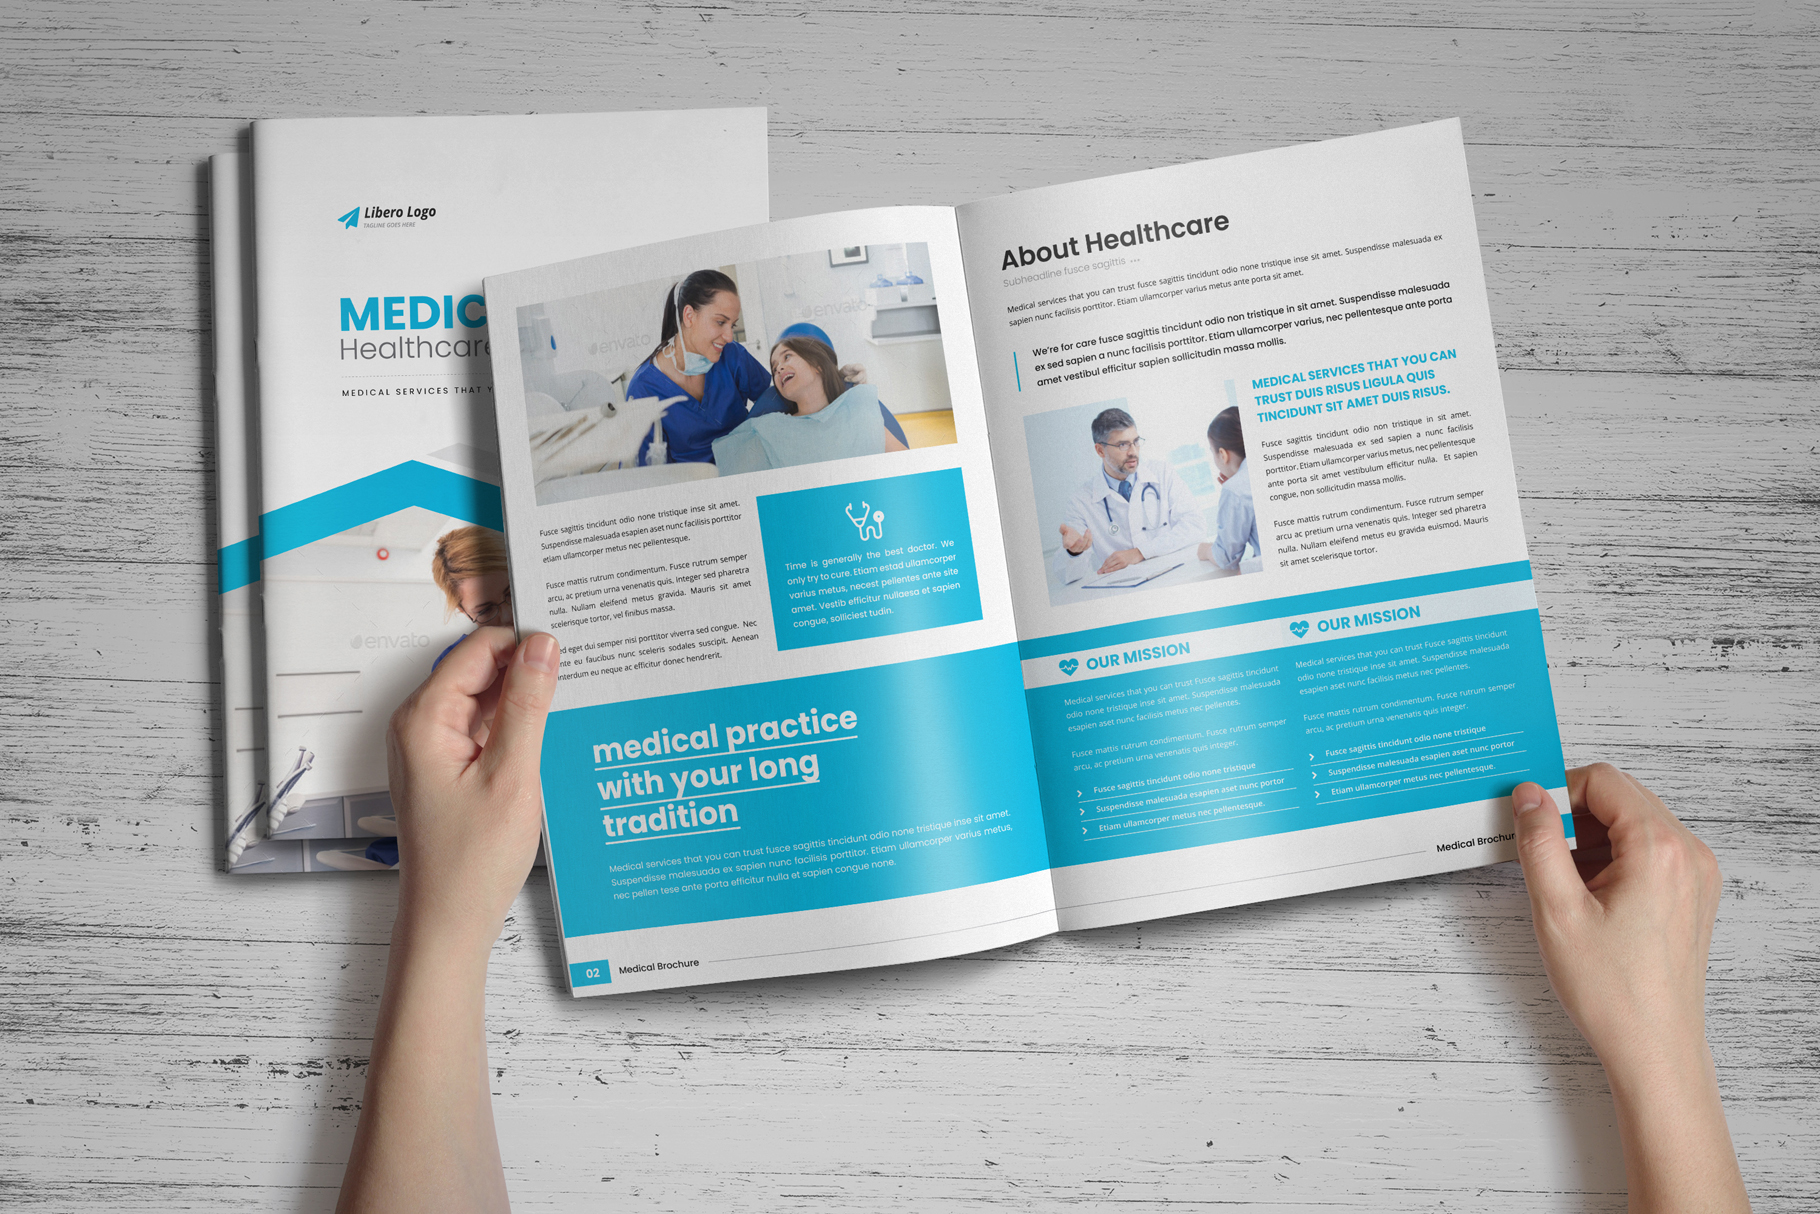 Medical HealthCare Brochure v6 example image 2